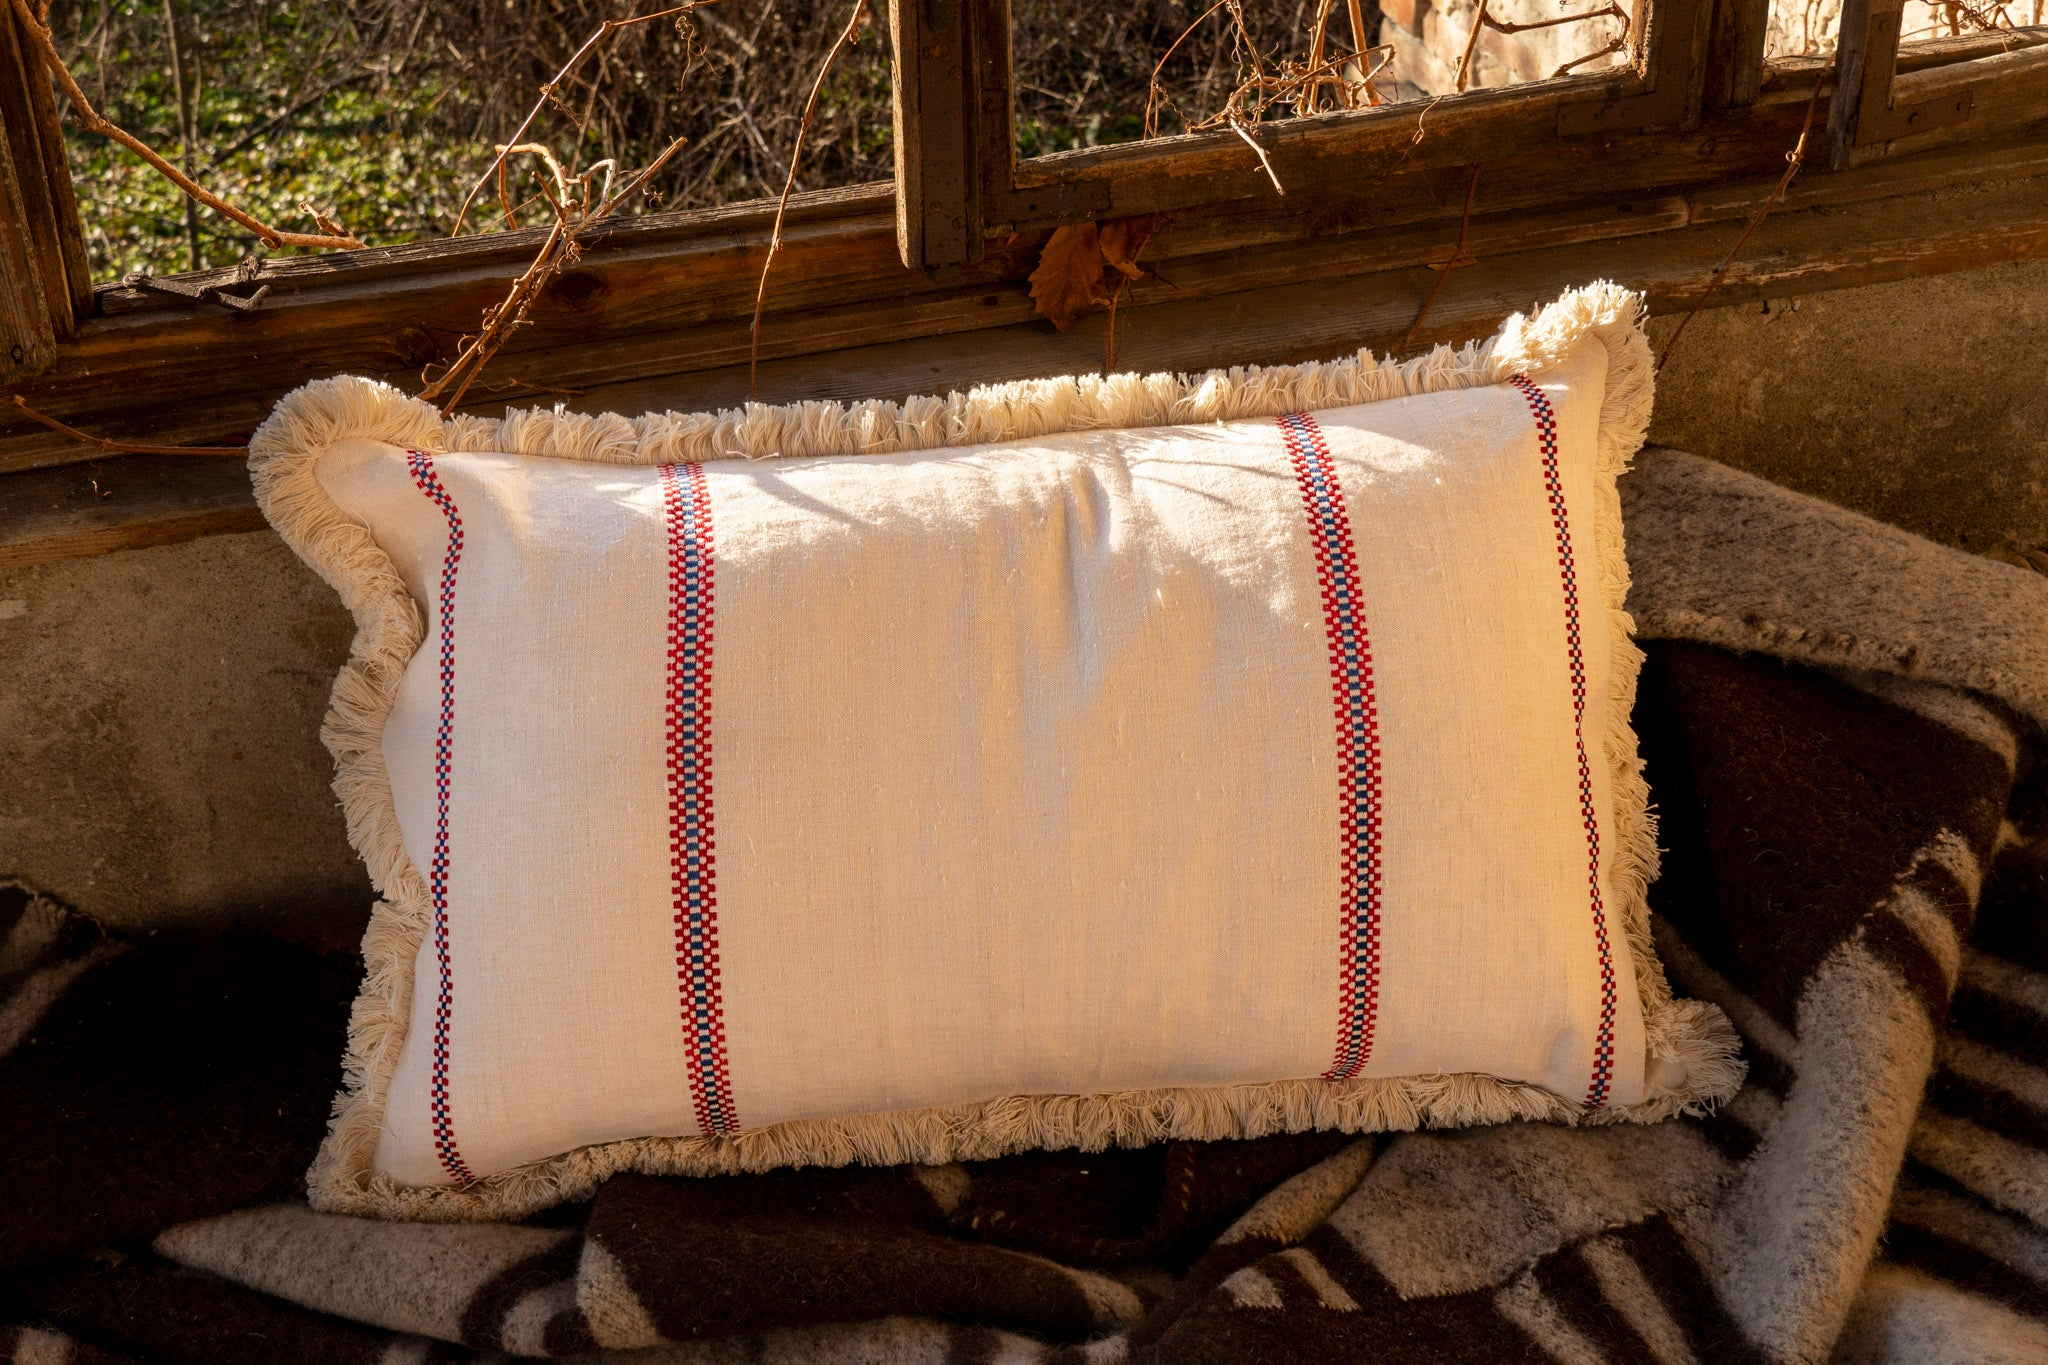 Pillow: Embroidered antique and vintage Hungarian hemp - P220